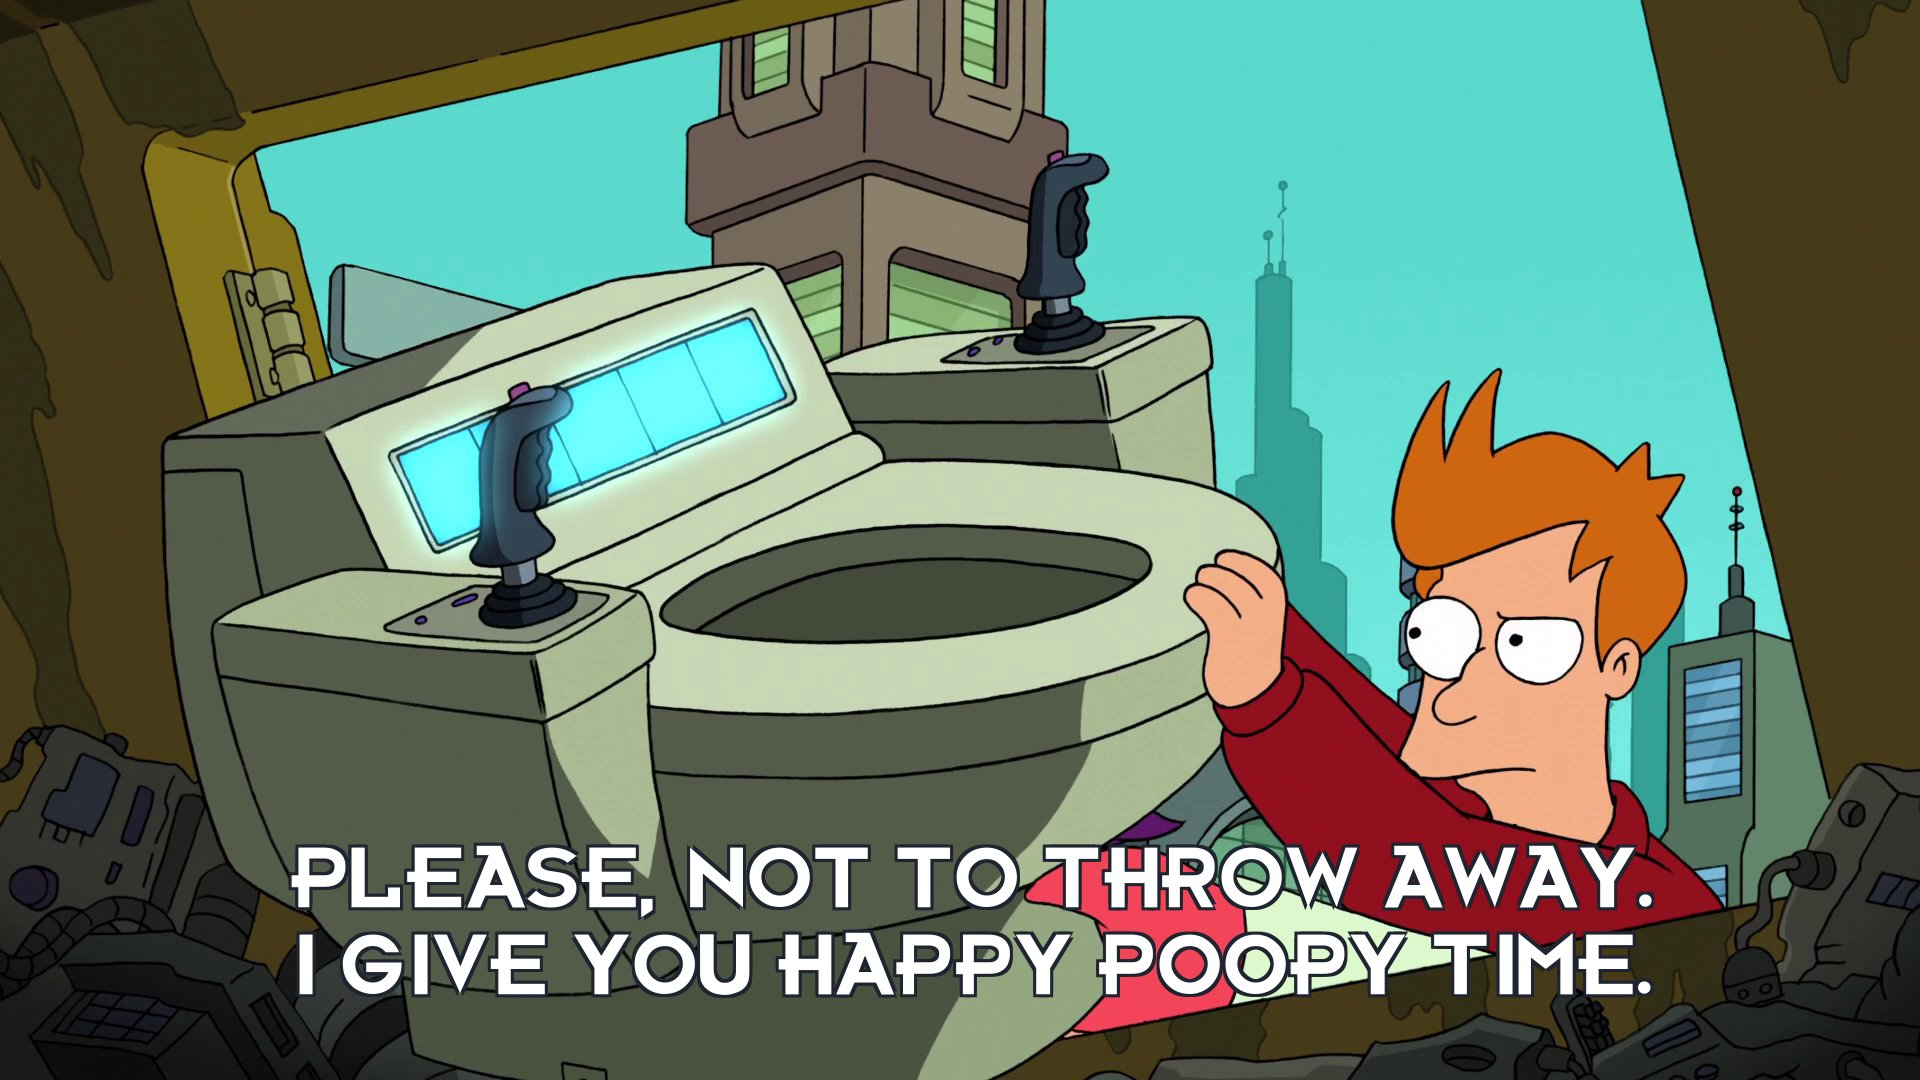 Toilet: Please, not to throw away. I give you happy poopy time.